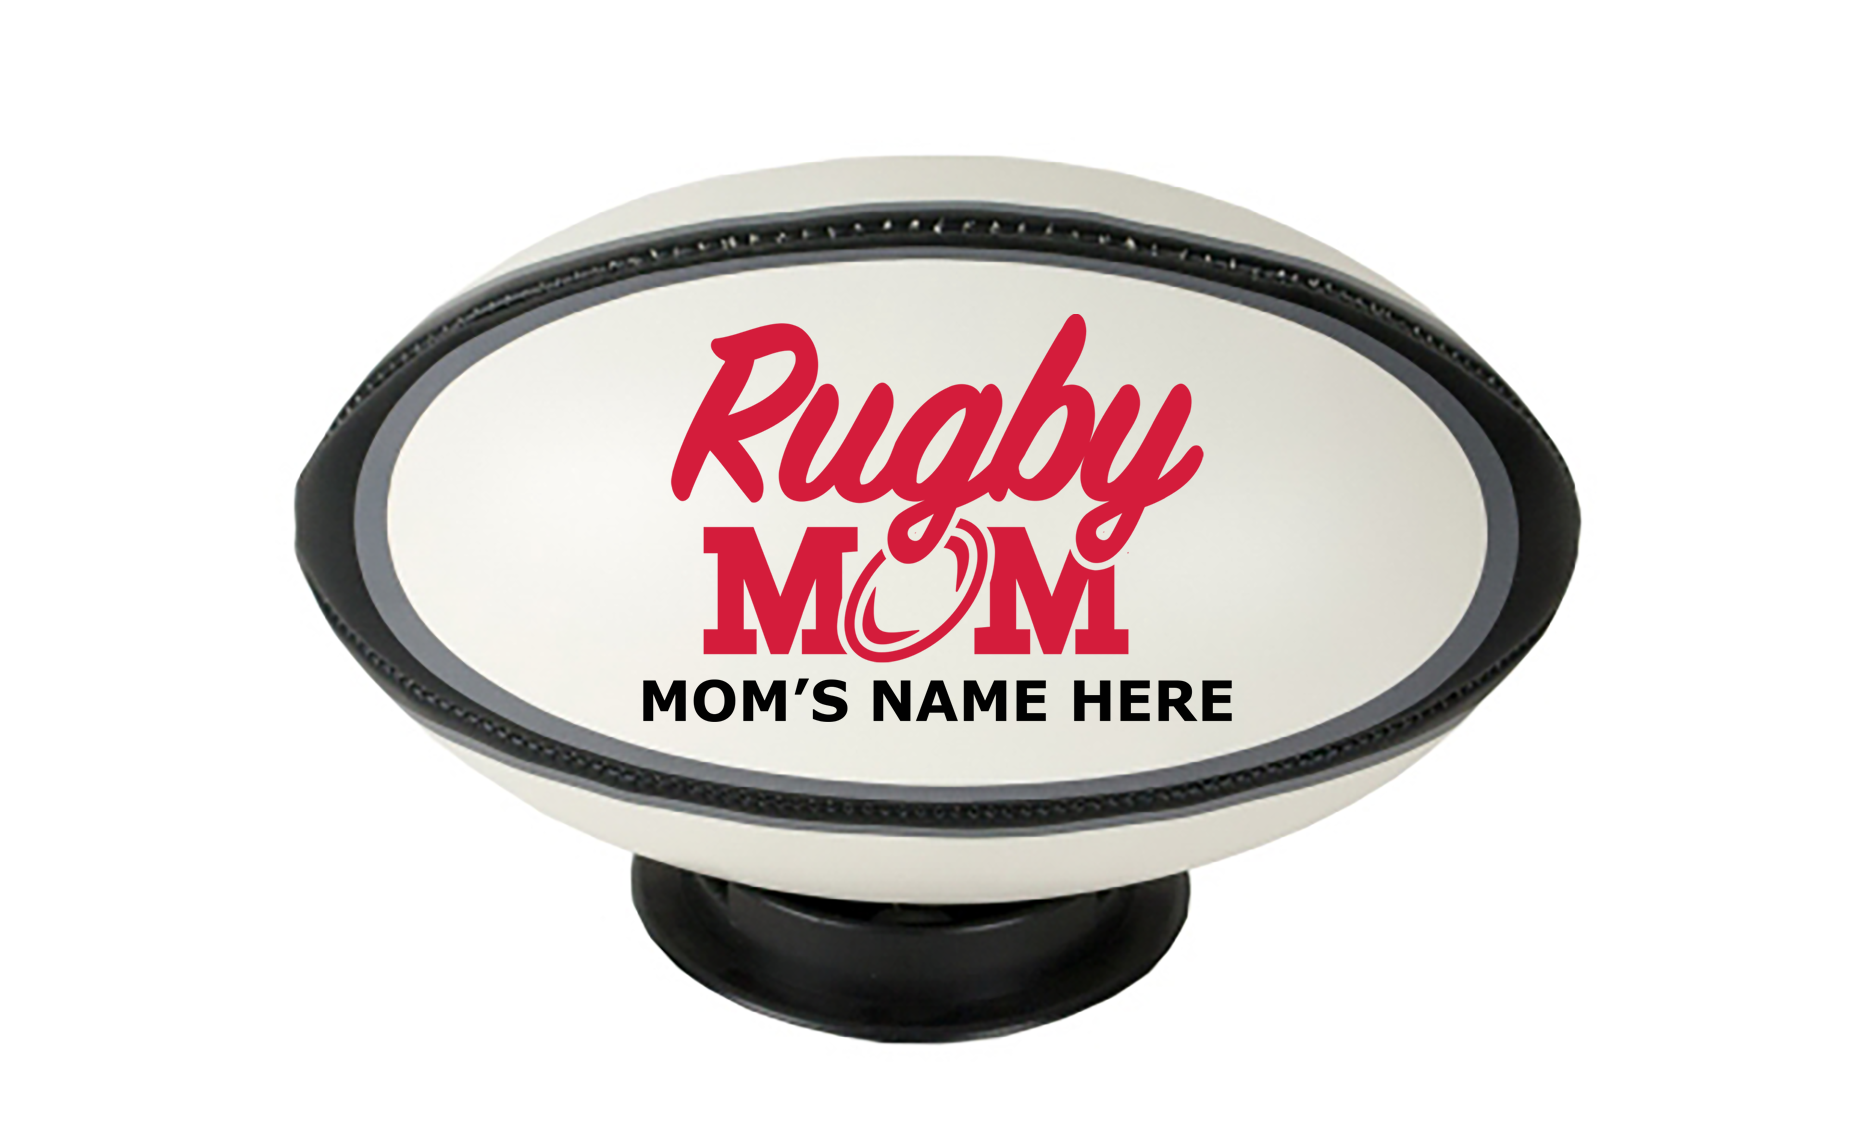 Rugby Mom Ball In 2020 Rugby Mom Rugby Team Dinner